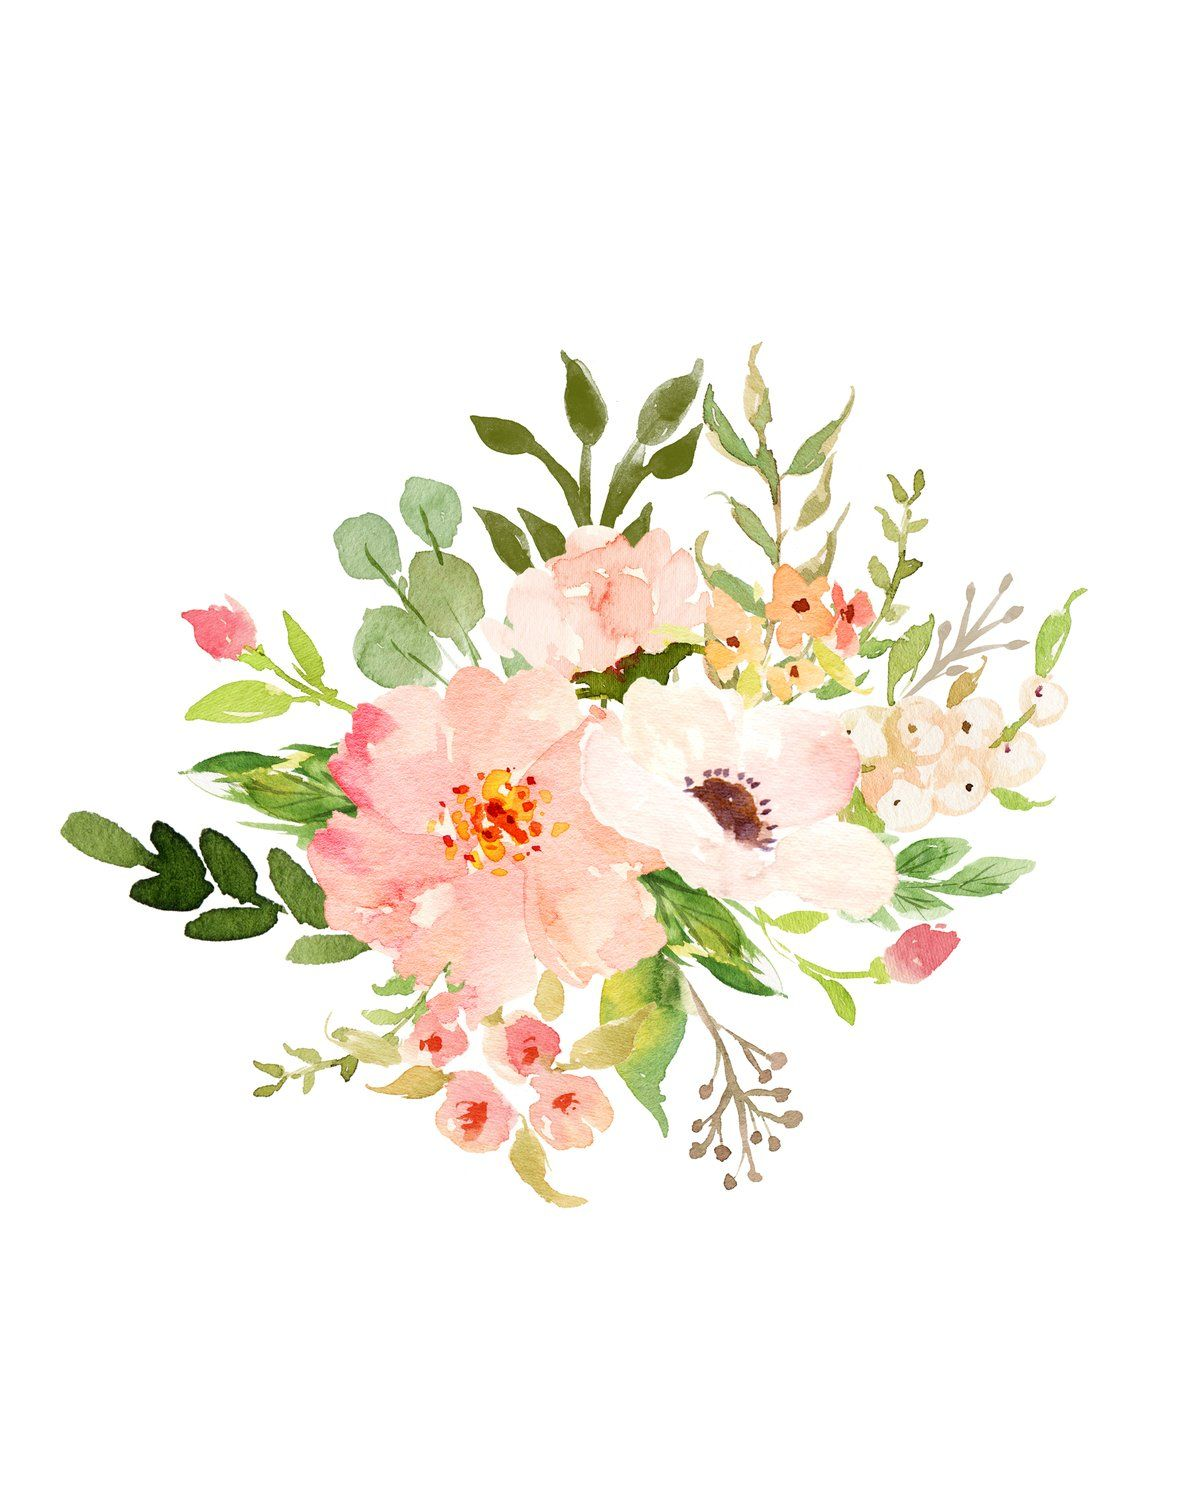 Floral Whimsy Bouquet Ii Instant Download Floral Watercolor